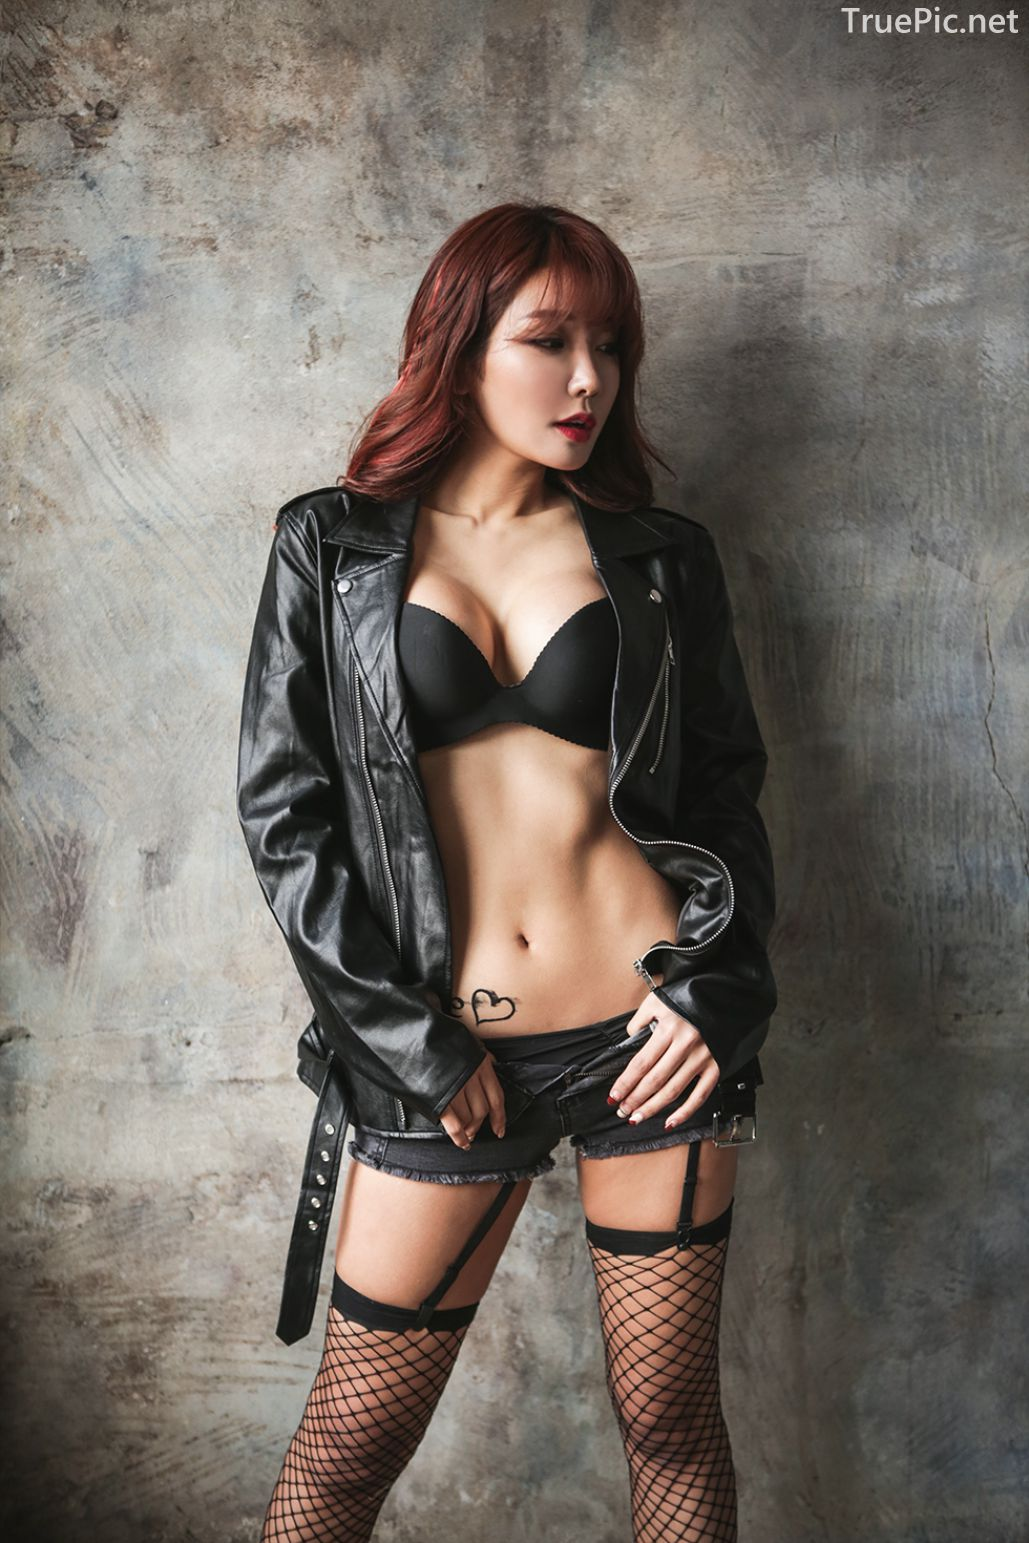 Korean-Lingerie-Fashion-Lee-Da-Hee-model-Tell-Me-What-You-Want-To-Do-TruePic.net- Picture 3